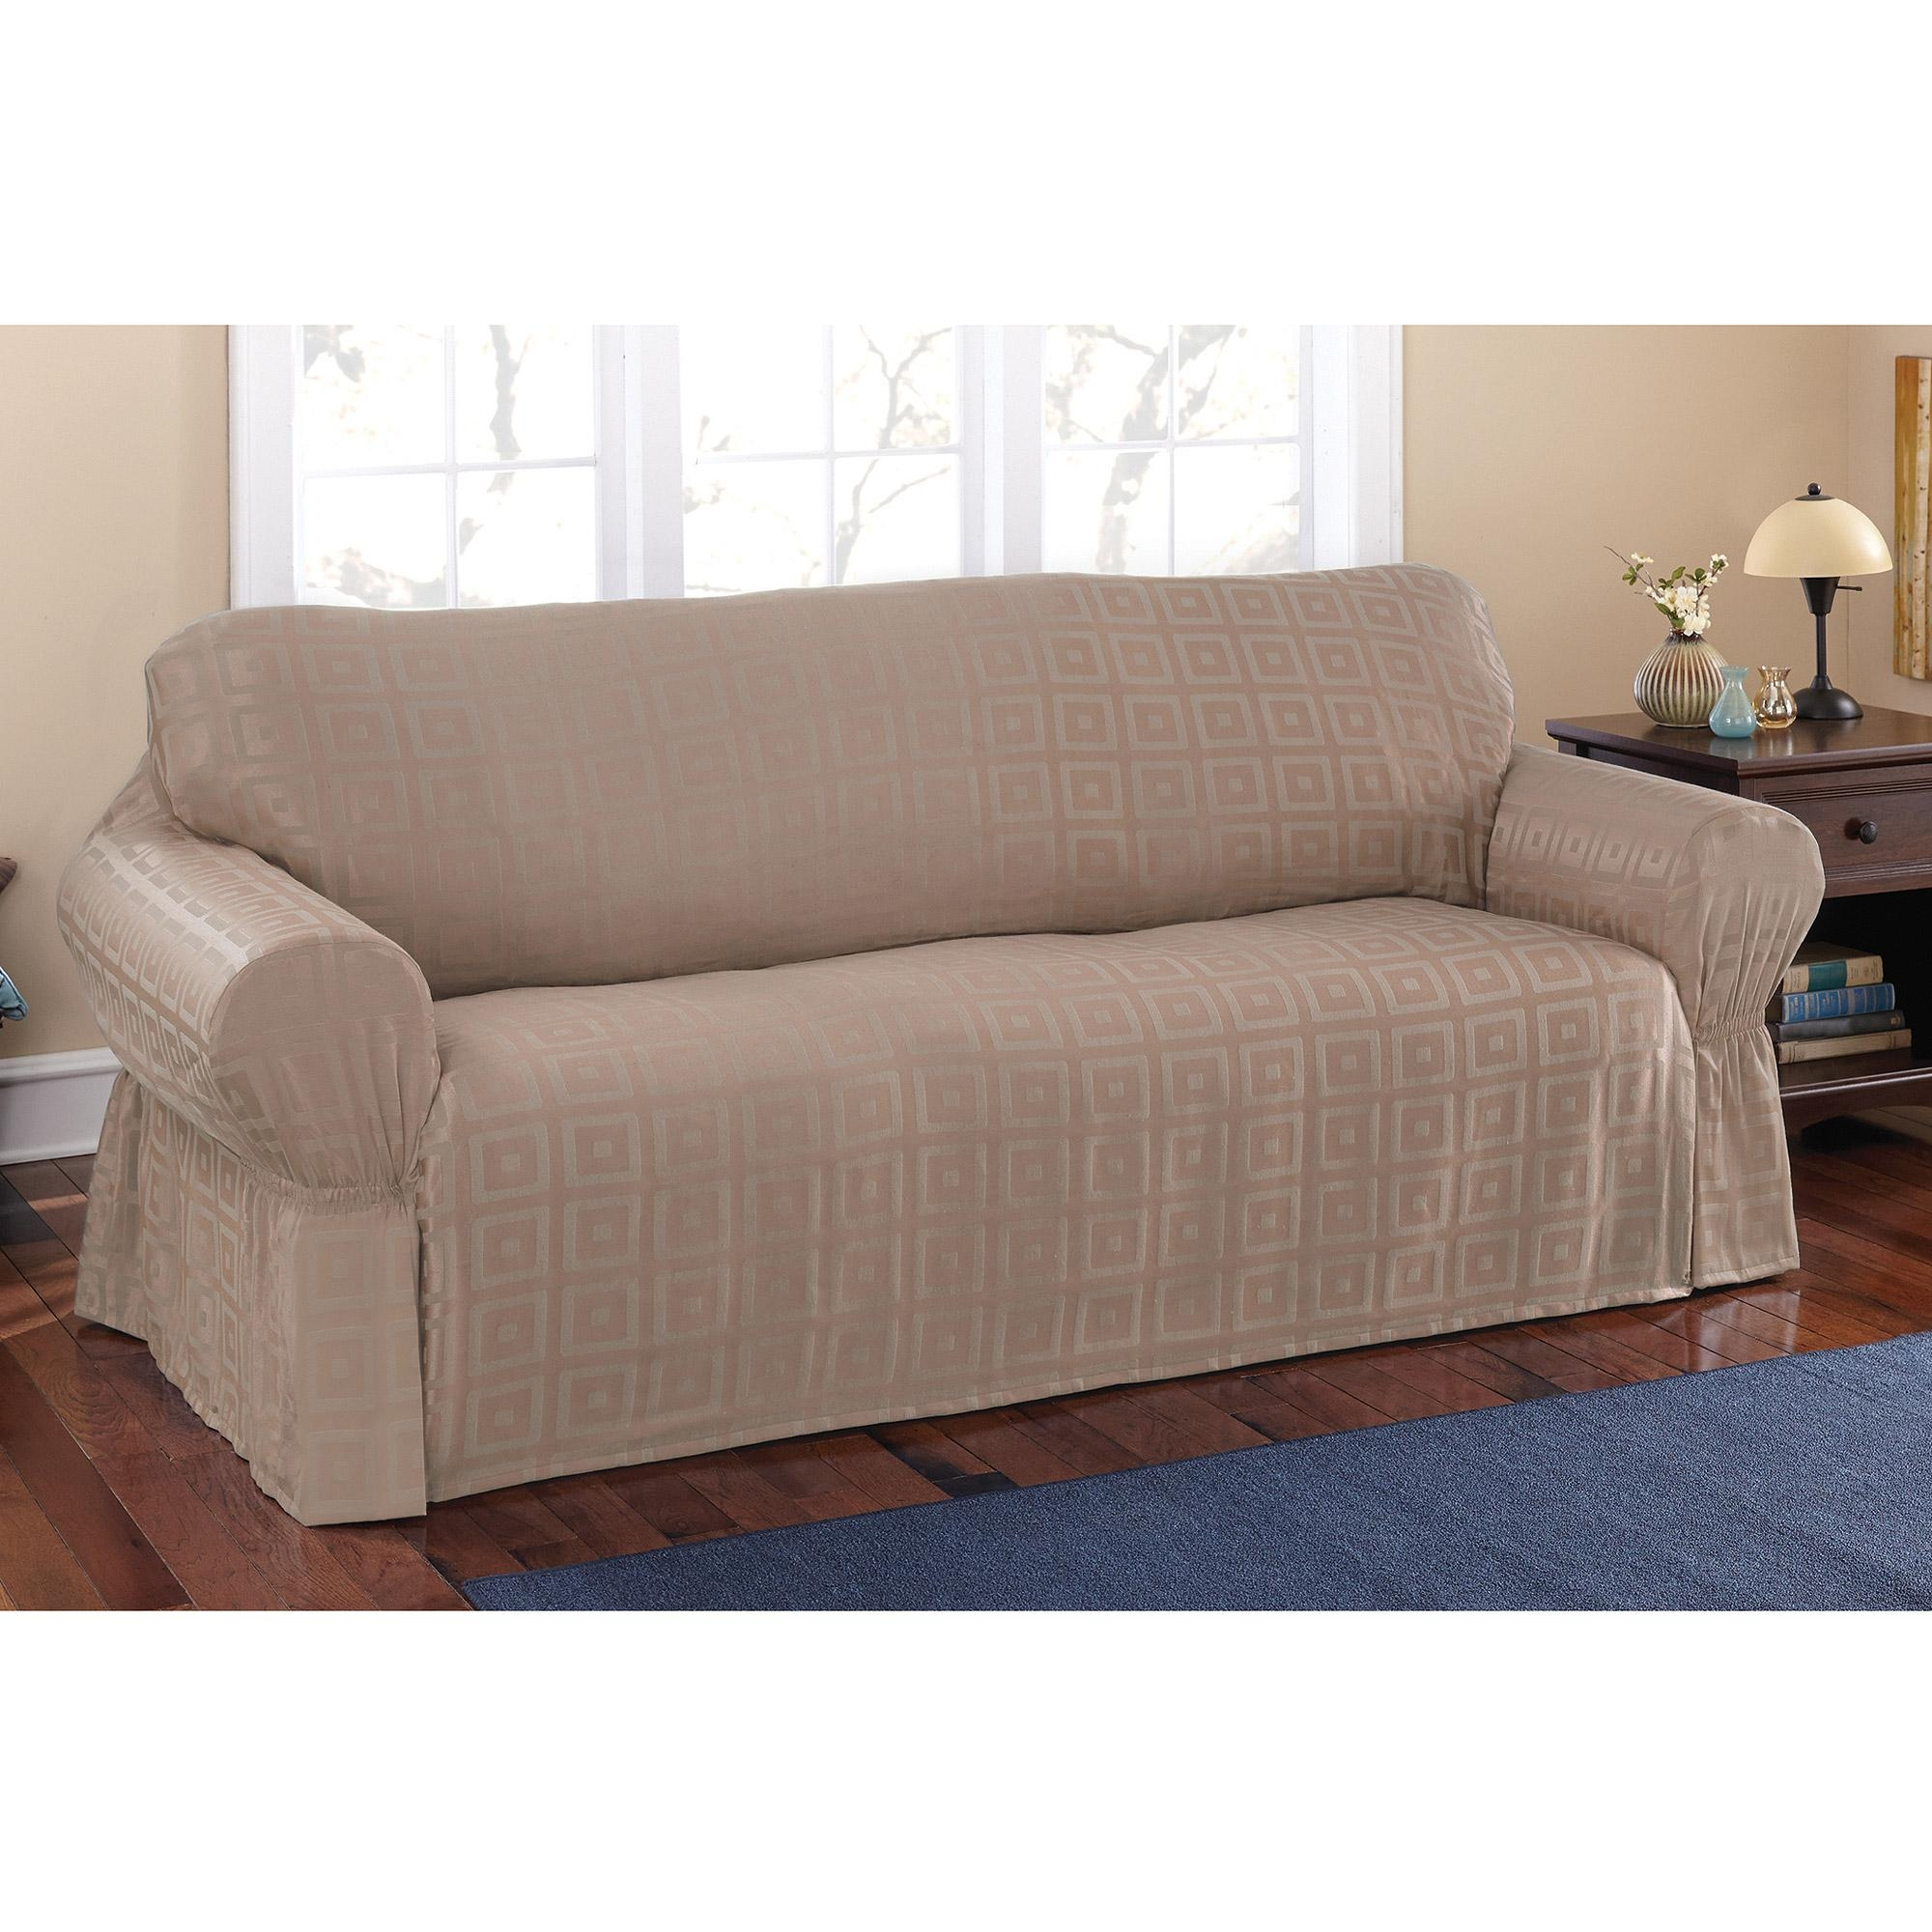 Mainstays Pixel Stretch Fabric Furniture Armrest Covers – Walmart In Arm Protectors For Sofas (View 14 of 20)